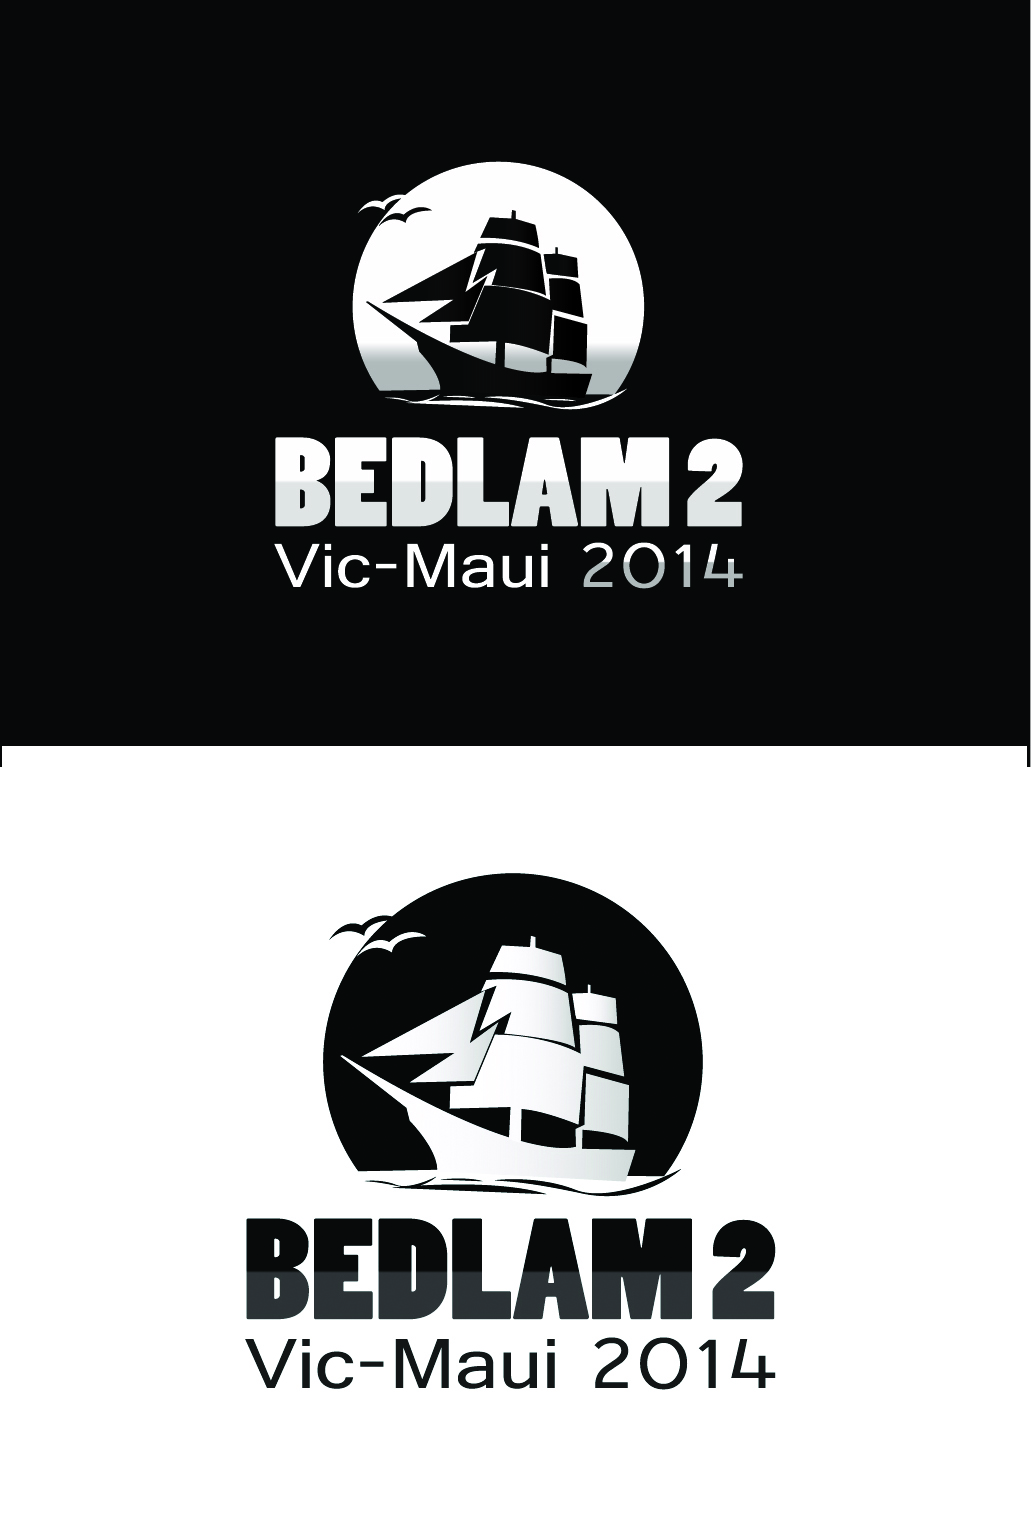 Logo Design by mediaproductionart - Entry No. 17 in the Logo Design Contest Artistic Logo Design for Bedlam 2  Vic-Maui 2014.